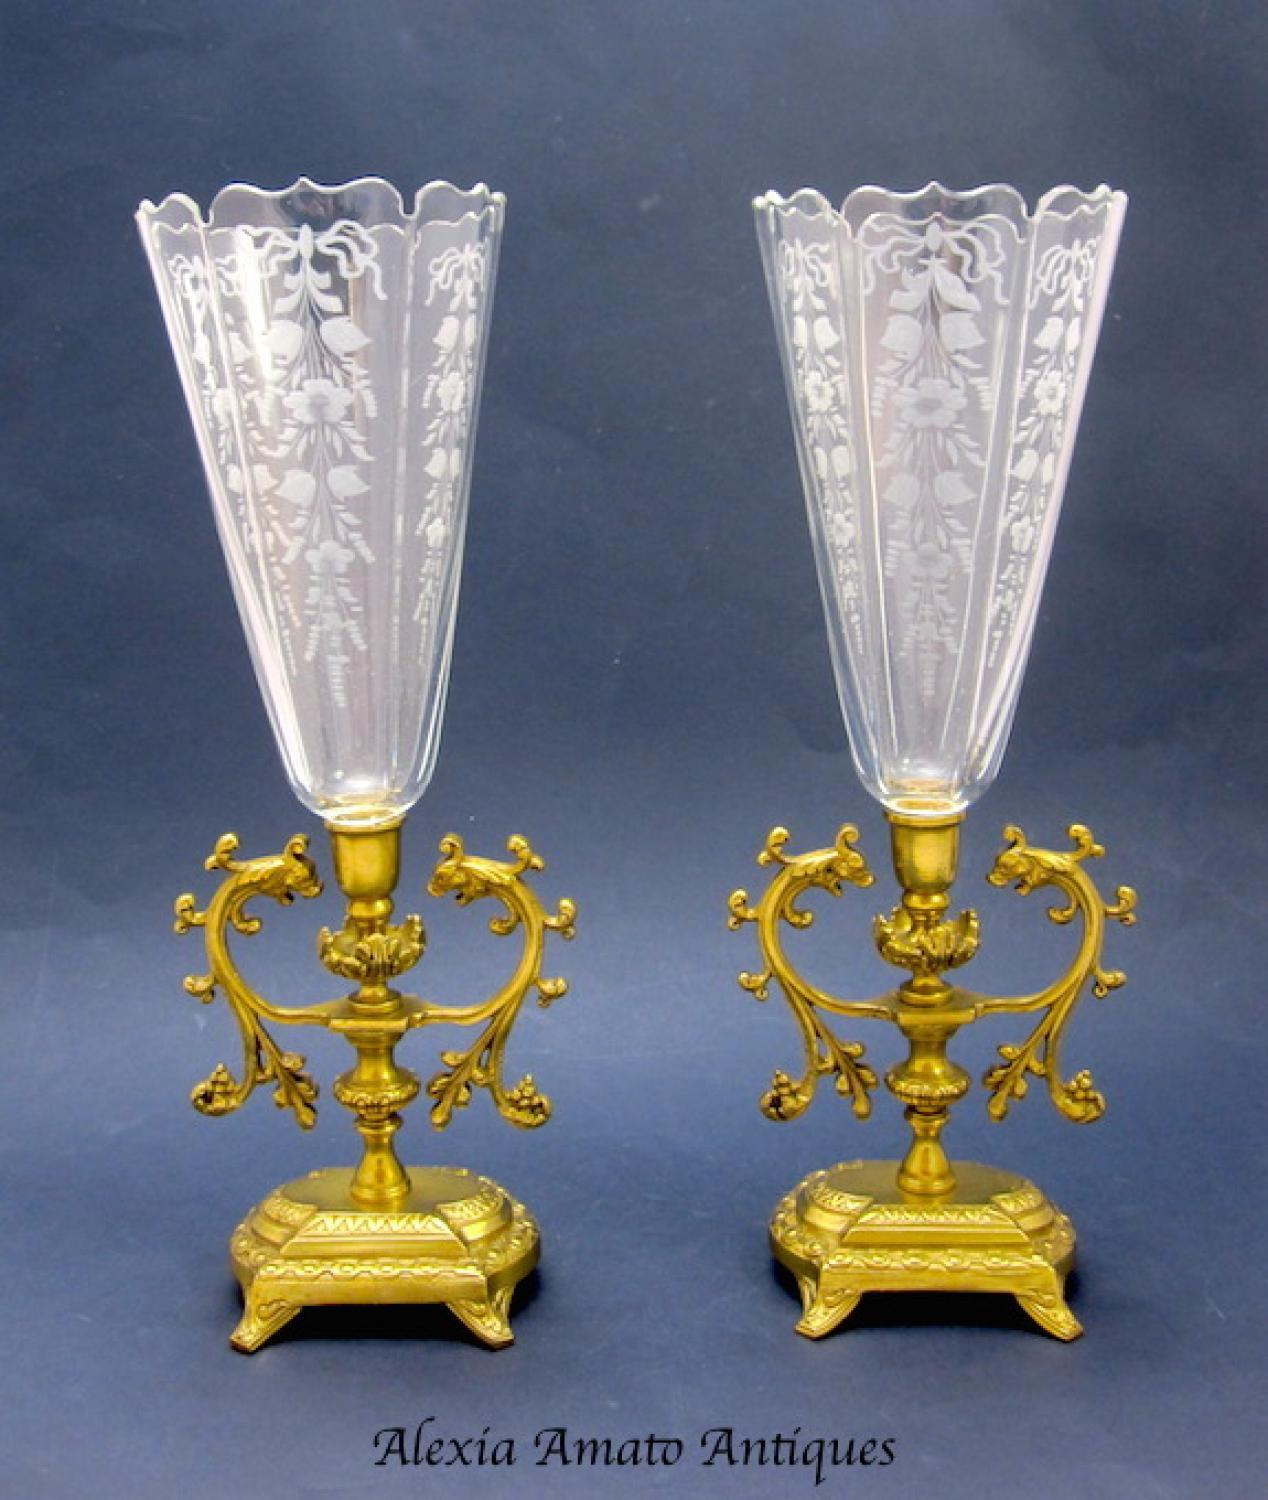 Pair of Elegant Antique French Crystal Vases